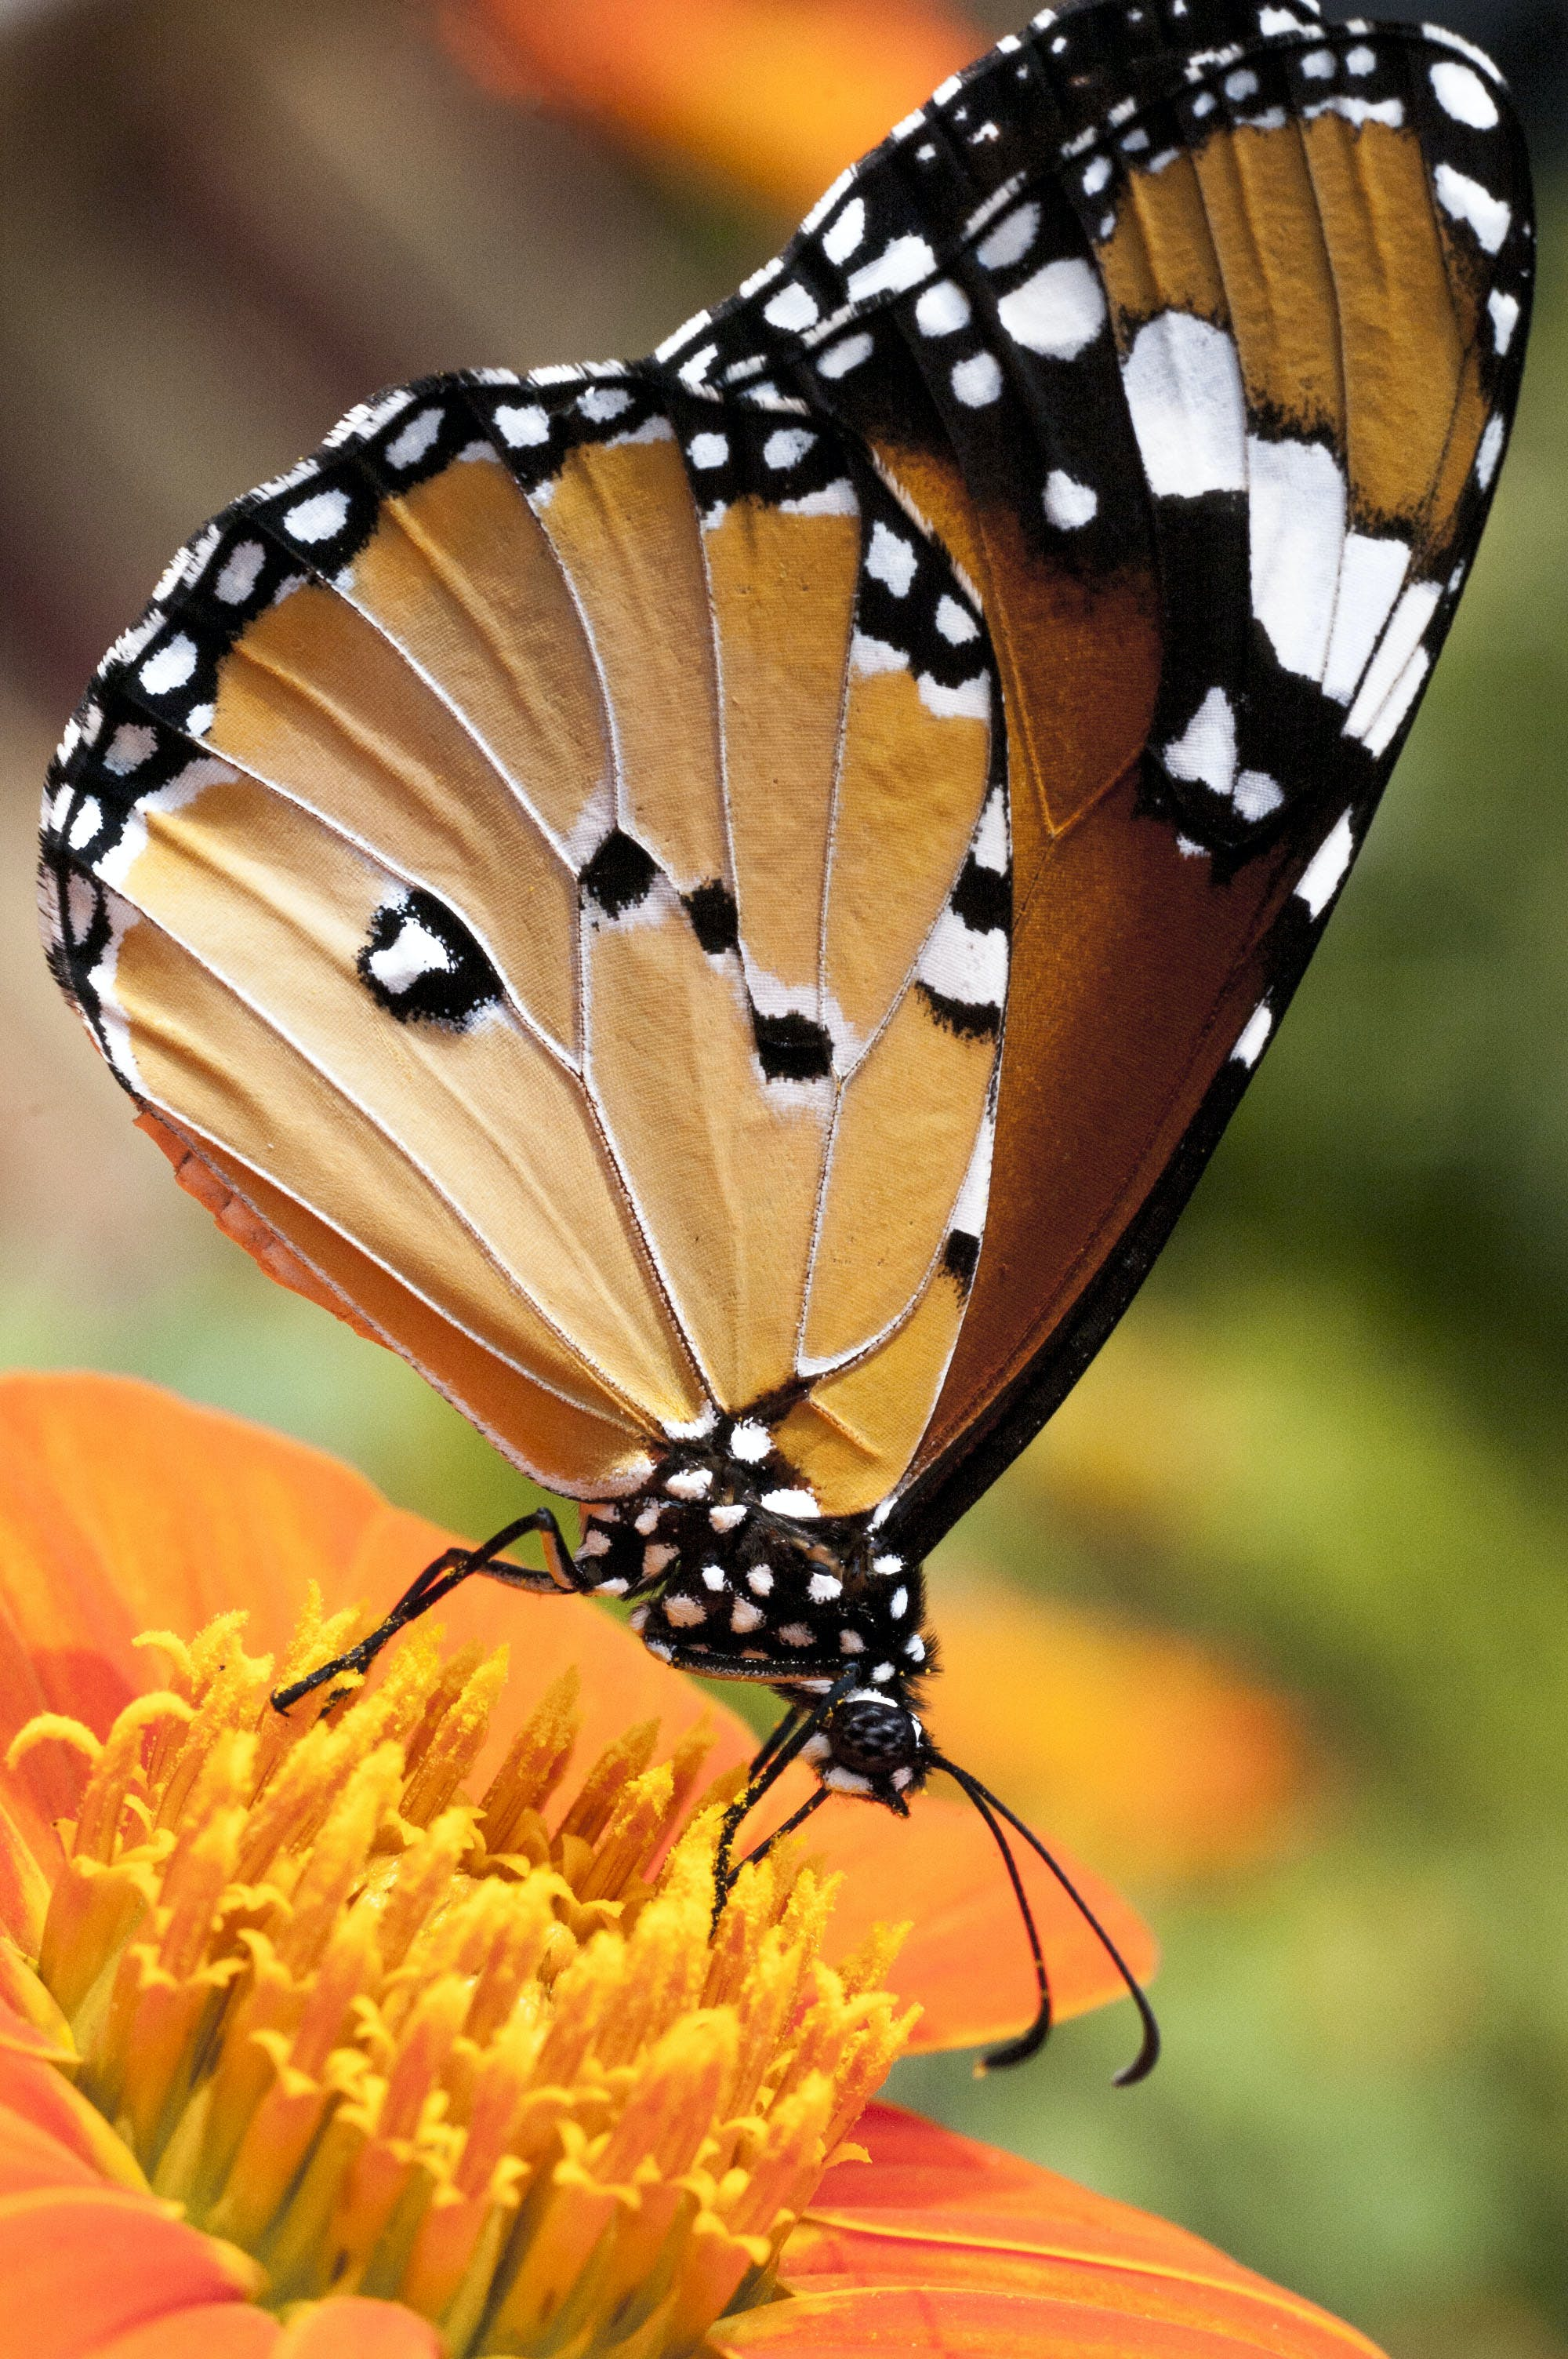 Free stock photo of arthropoda, butterfly, Butterfly on Tithonia flower, insecta